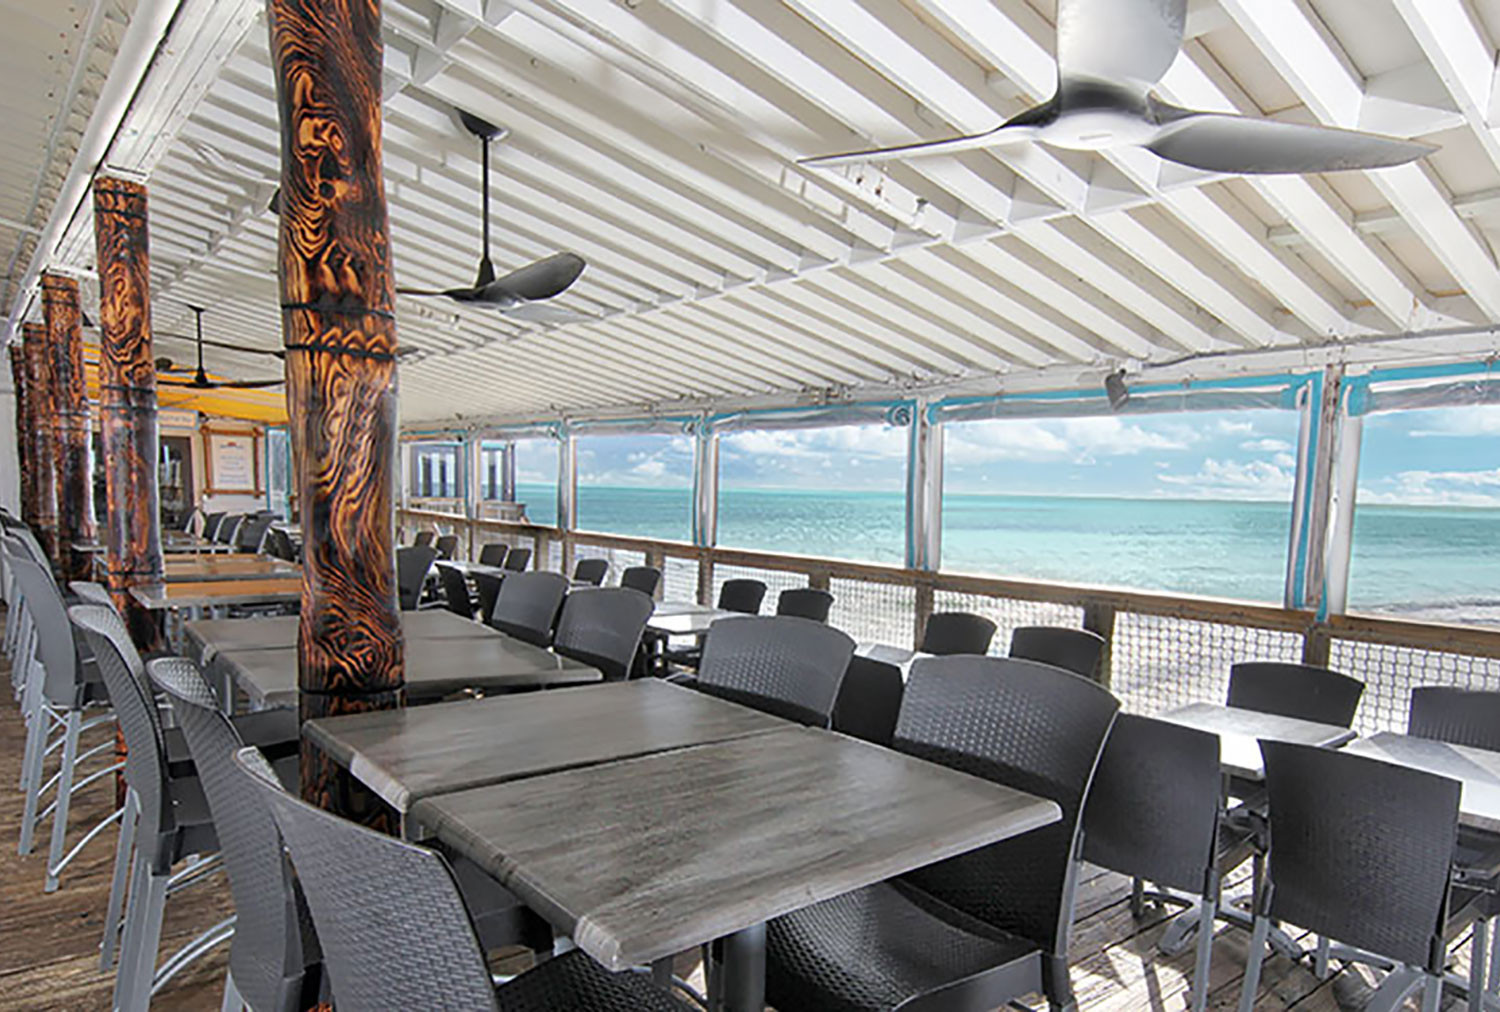 Boardwalk Bar in Cocoa Beach, FL | 4 Cocoa Beach Restaurants on the Water You Need to Try | Waterside Restaurants